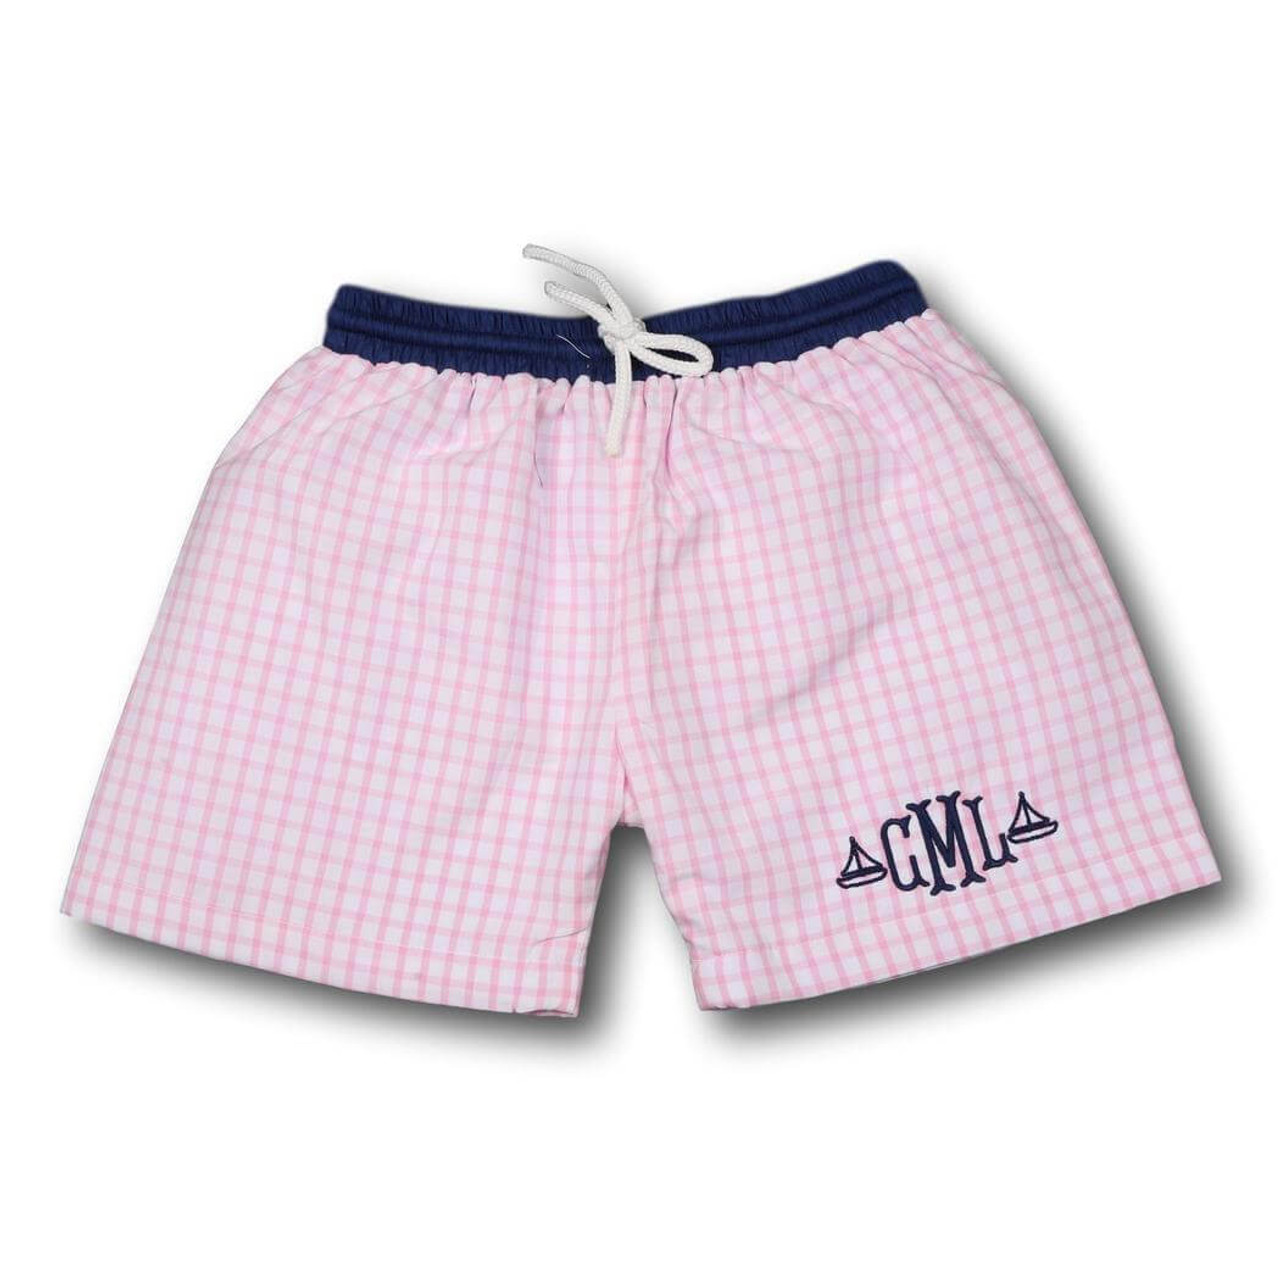 c40e0c0302 Pink Windowpane and Navy Swim Trunks - Cecil and Lou